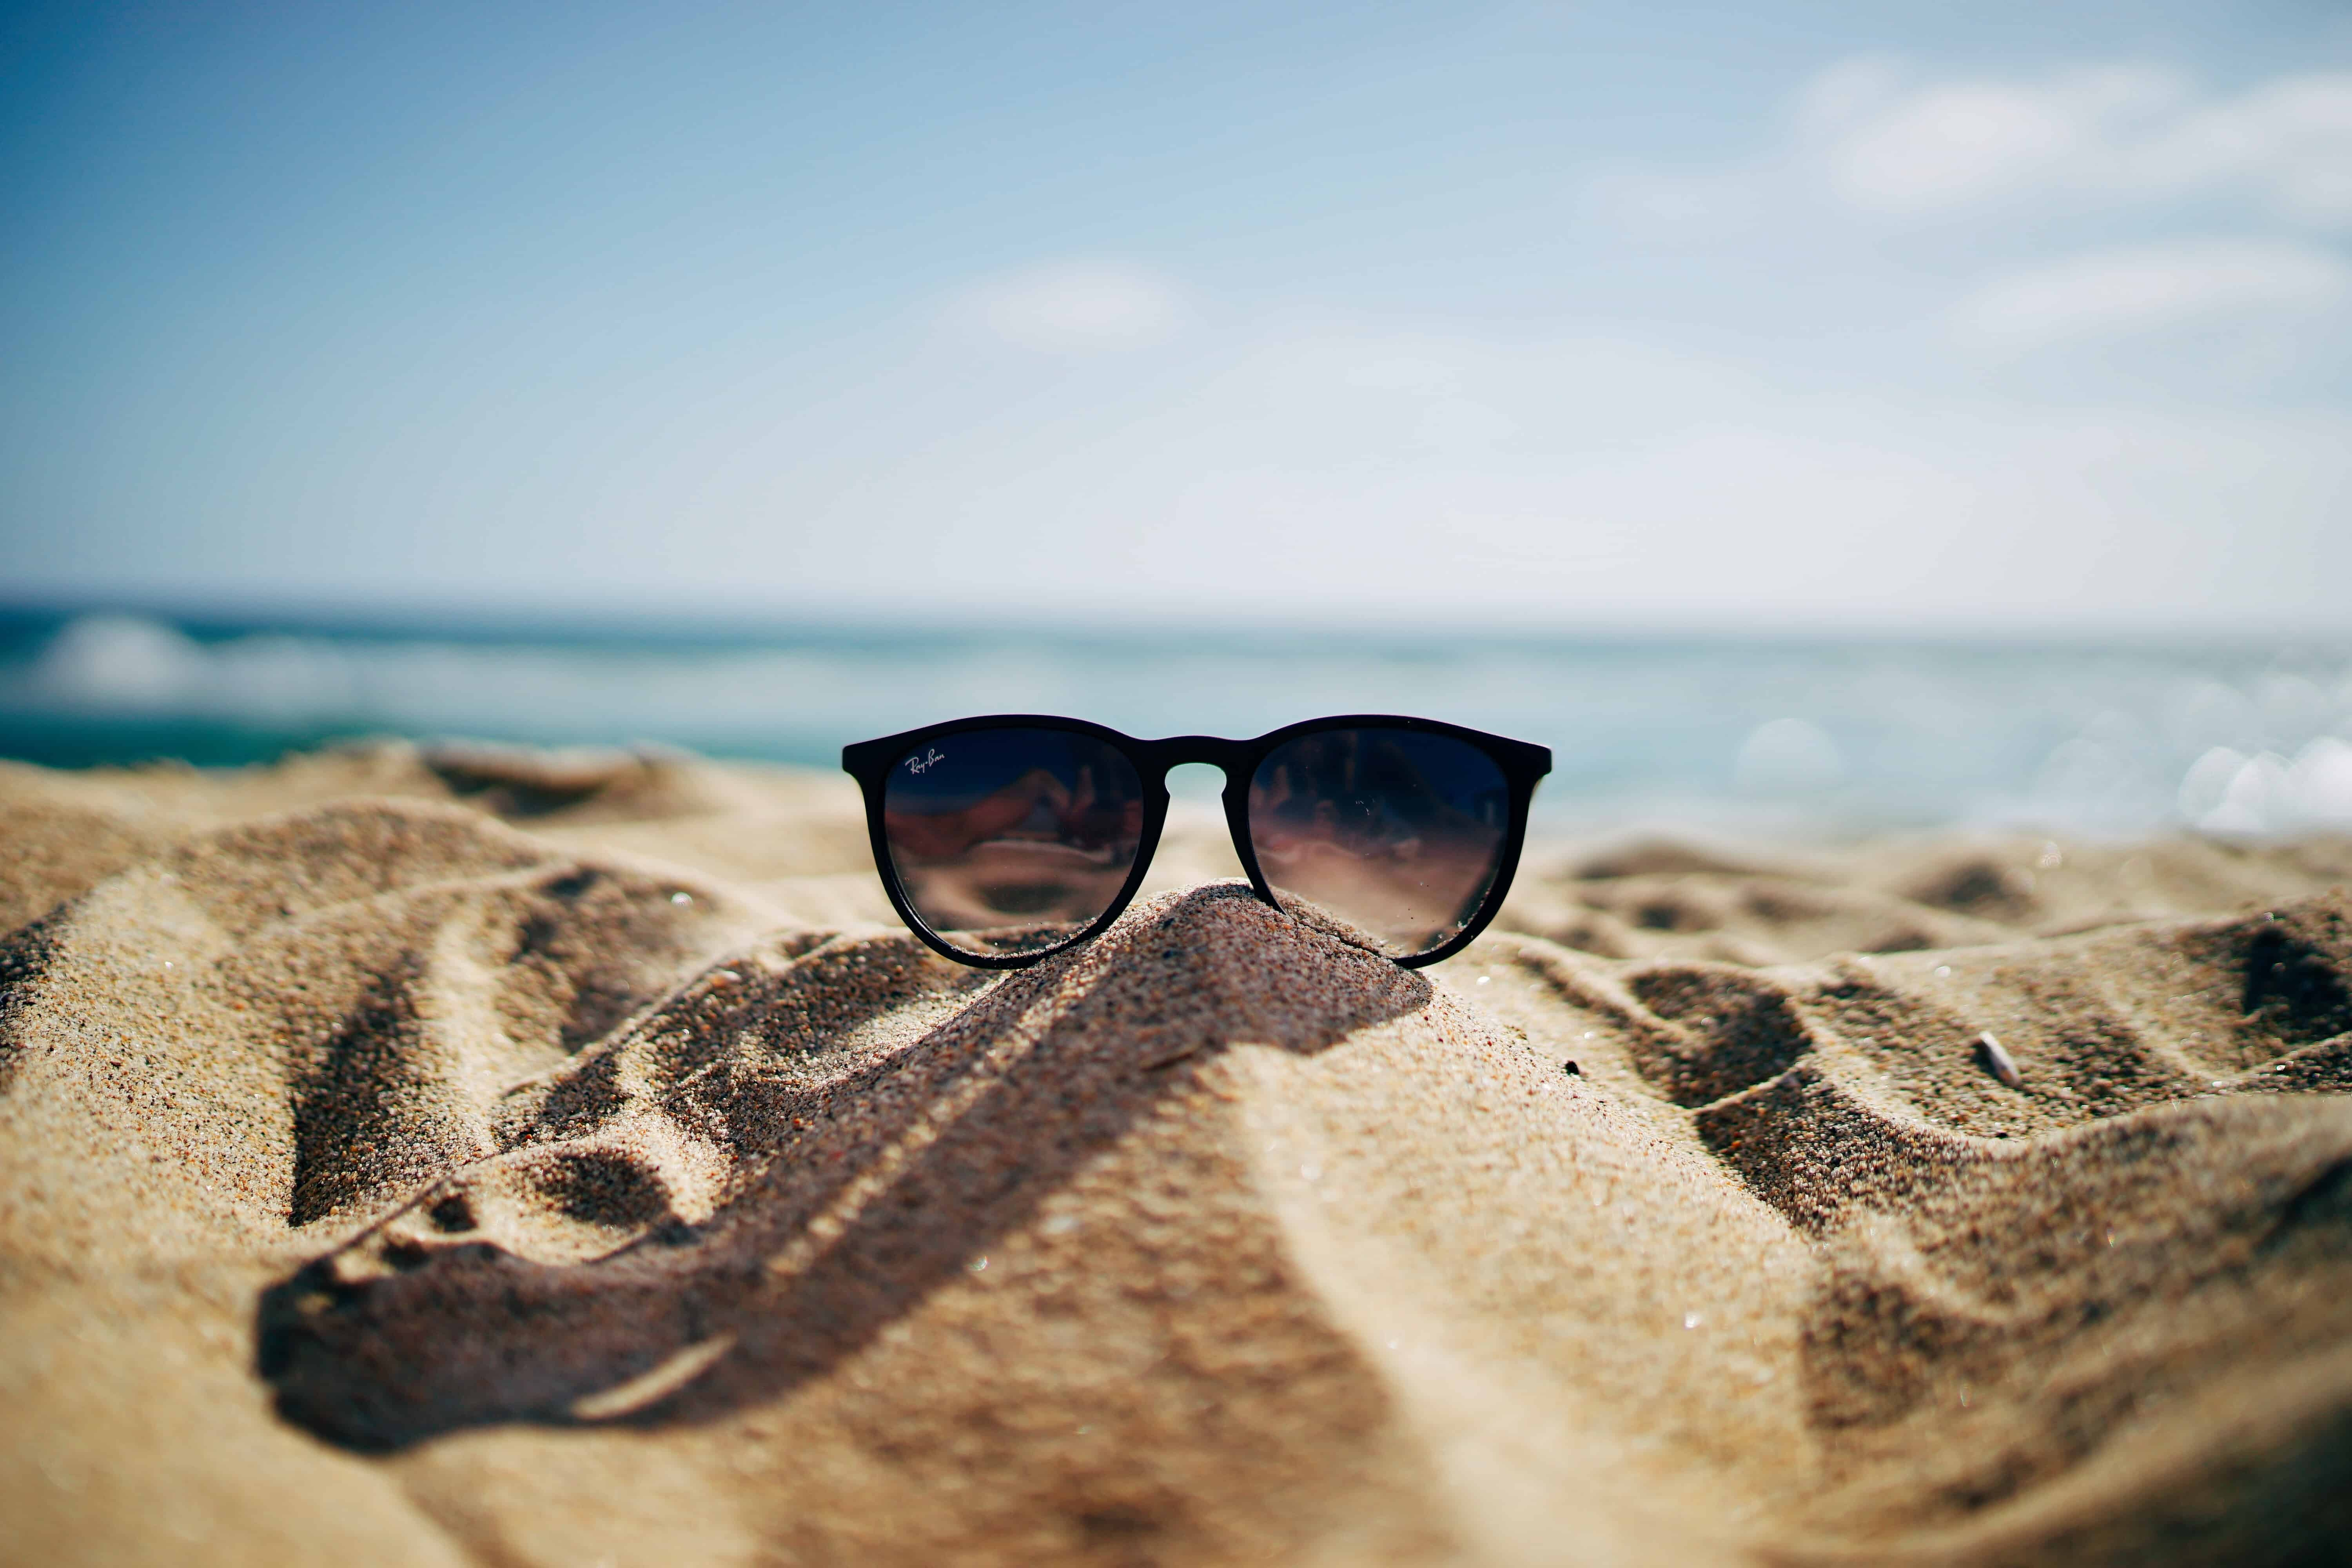 Going to the Beach? Take Some Shades